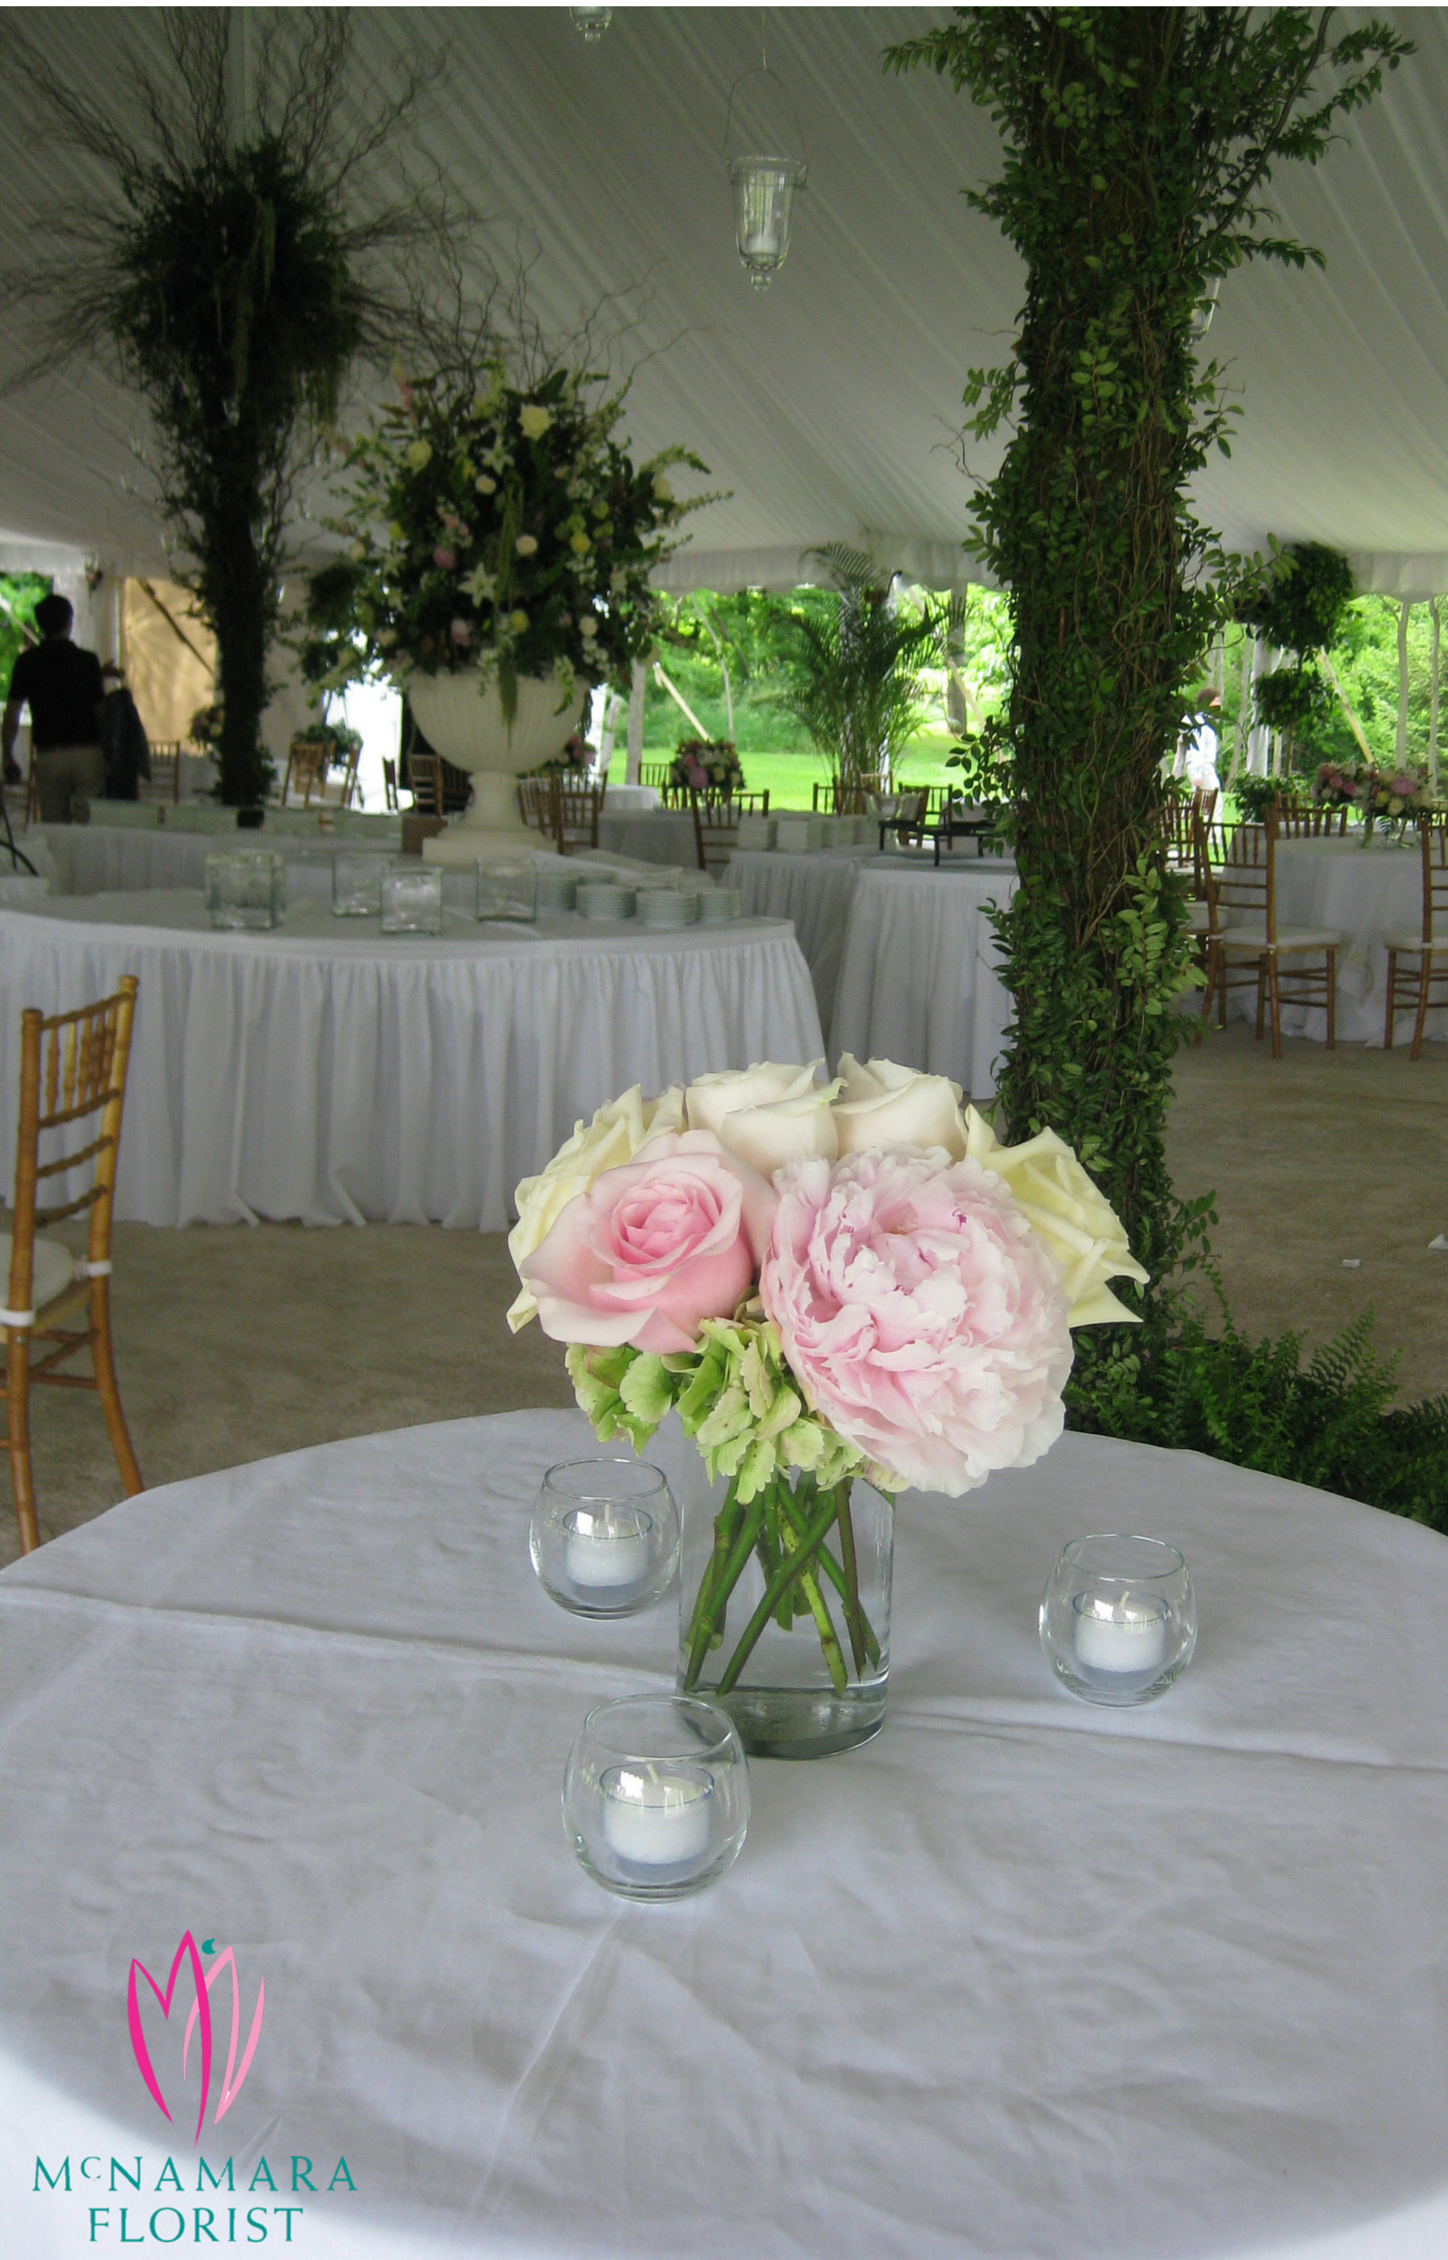 Roses And Peonies In Low Floral Arrangement As Centerpiece